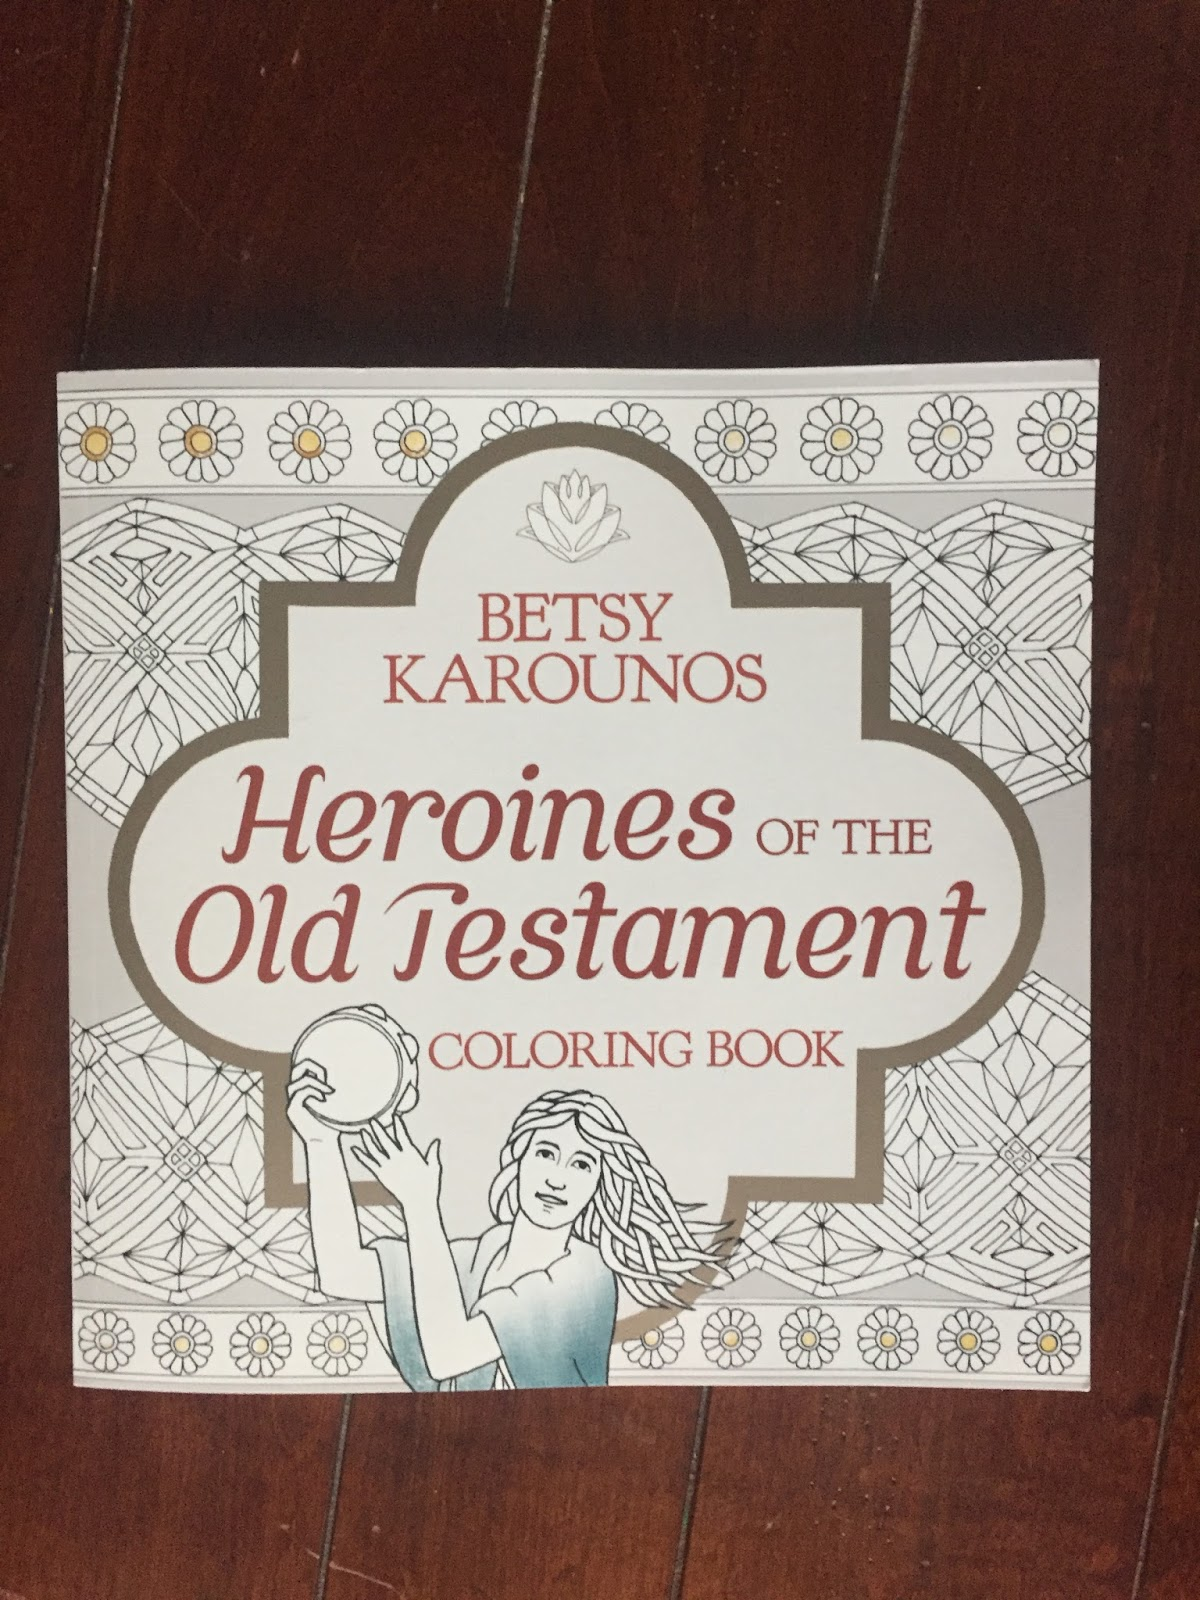 Heroines Of The Old Testament Coloring Book Review